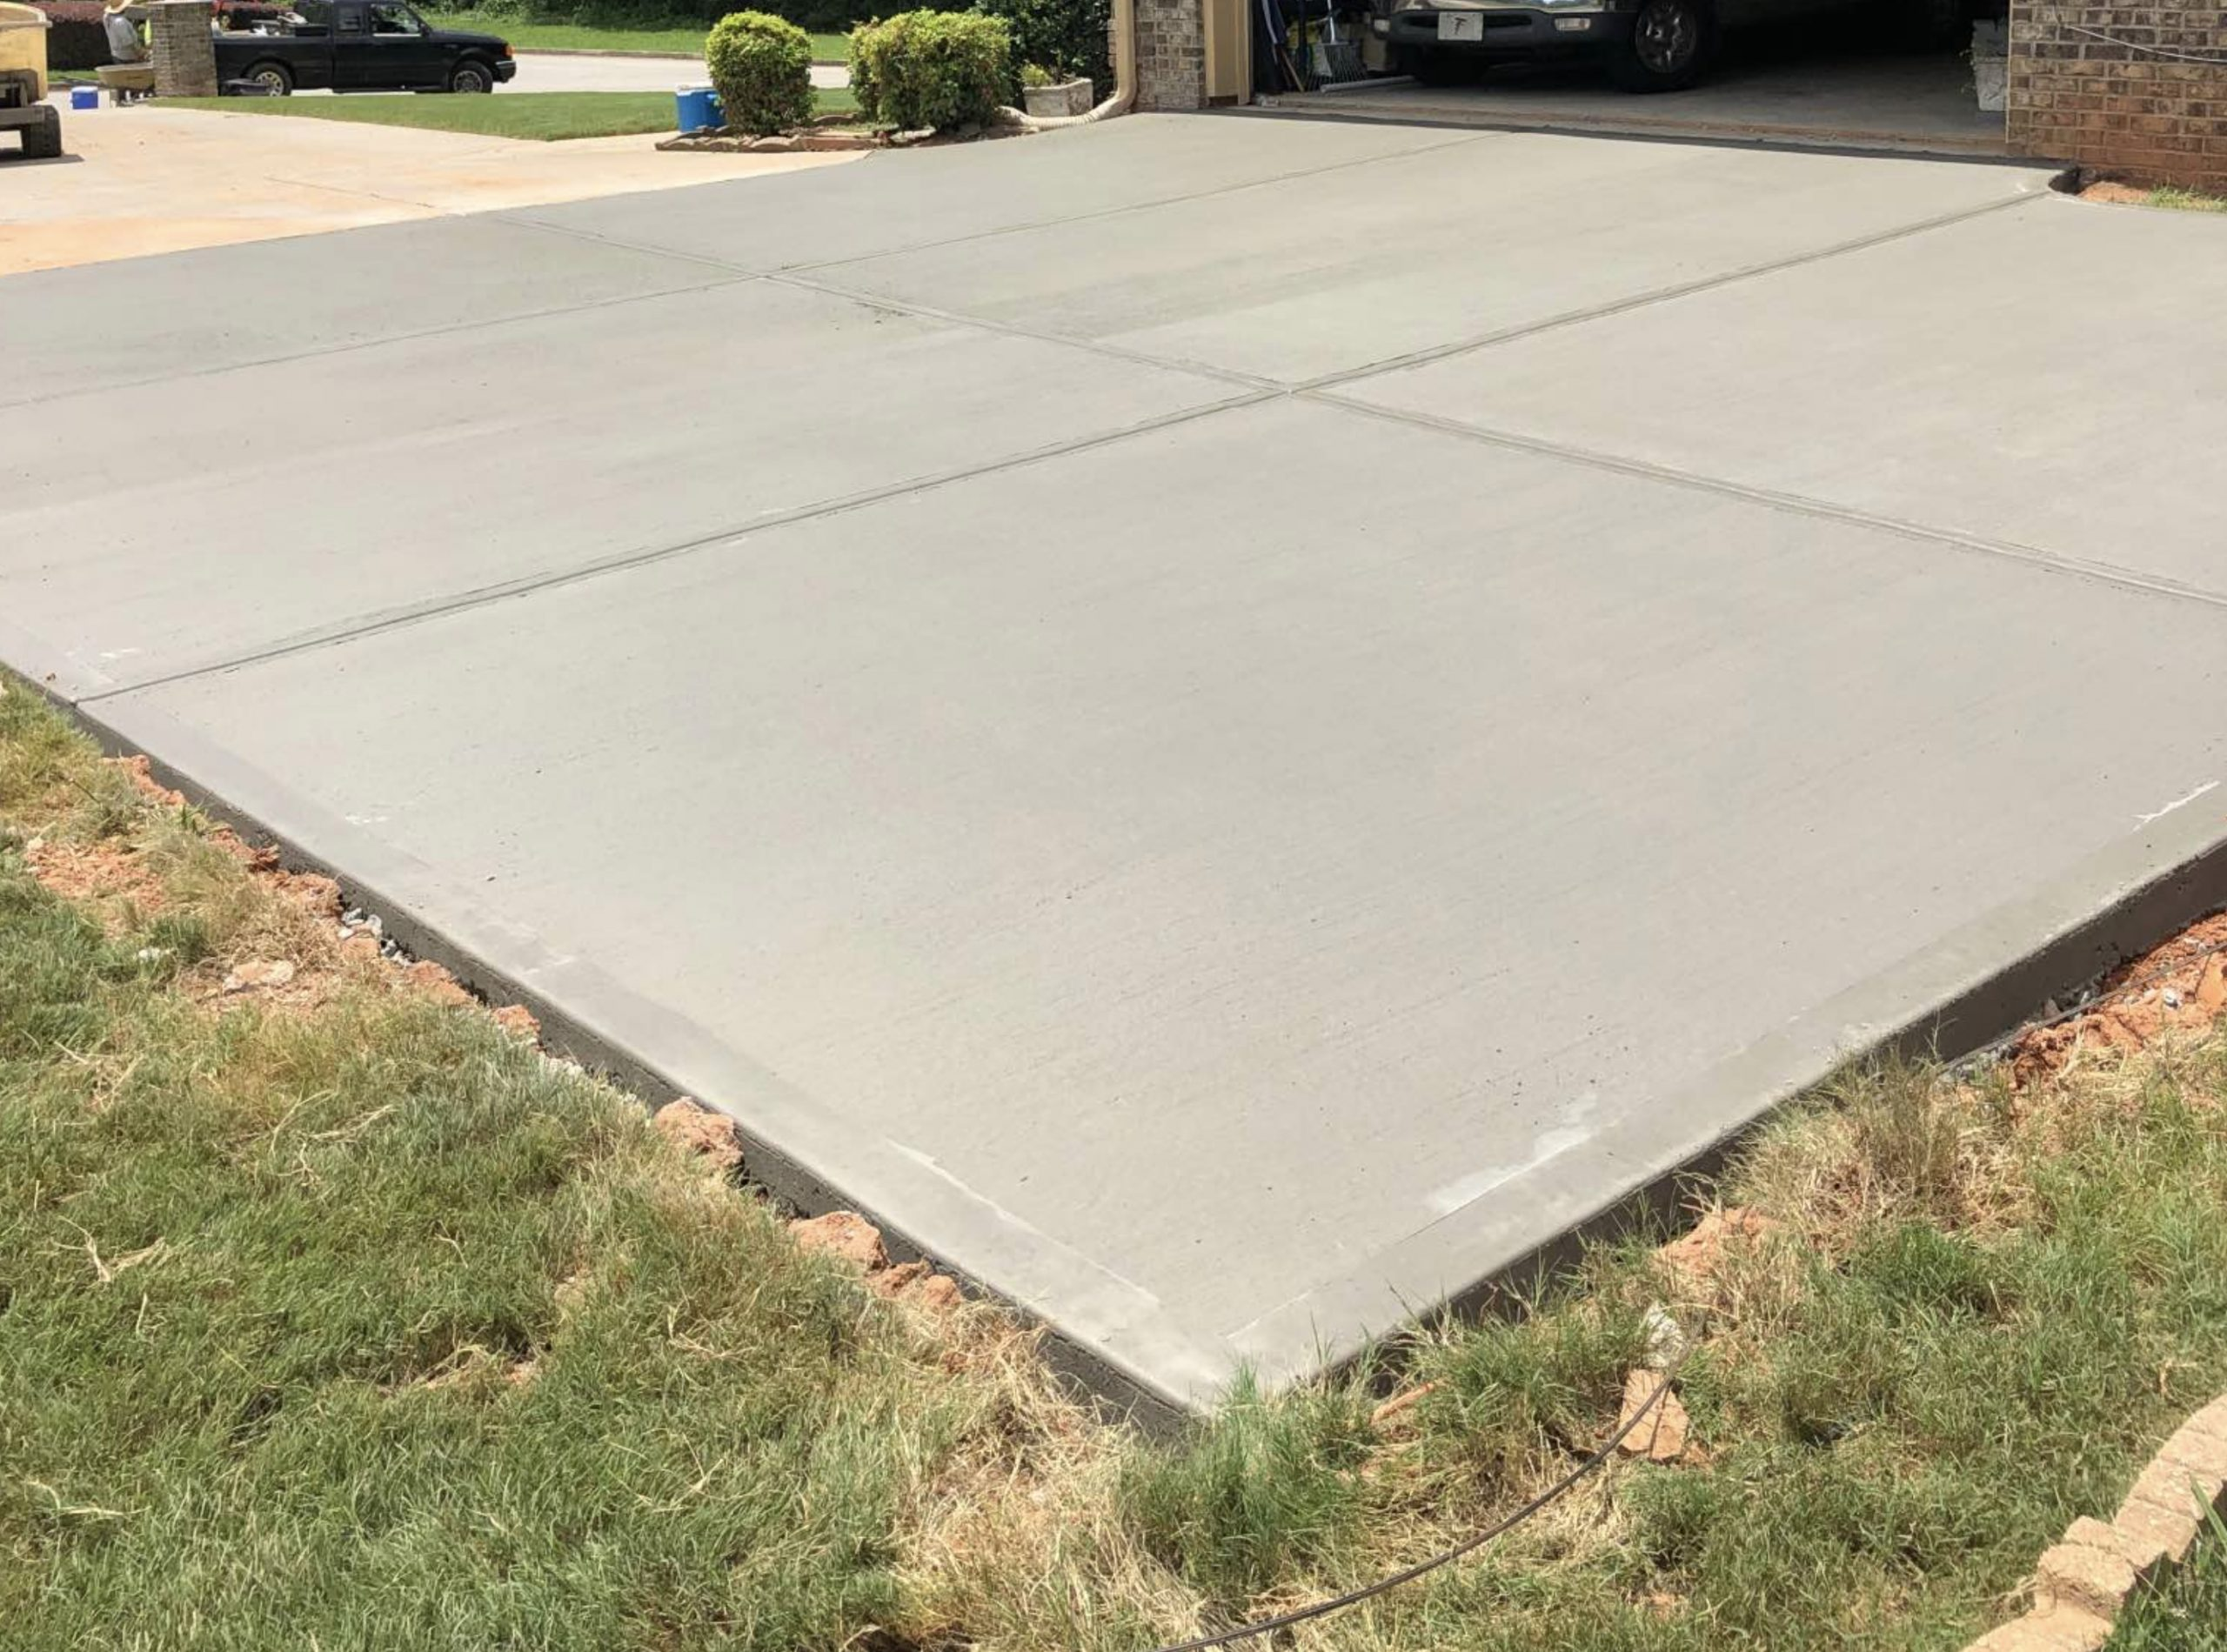 this image shows concrete patios in Fremont, California